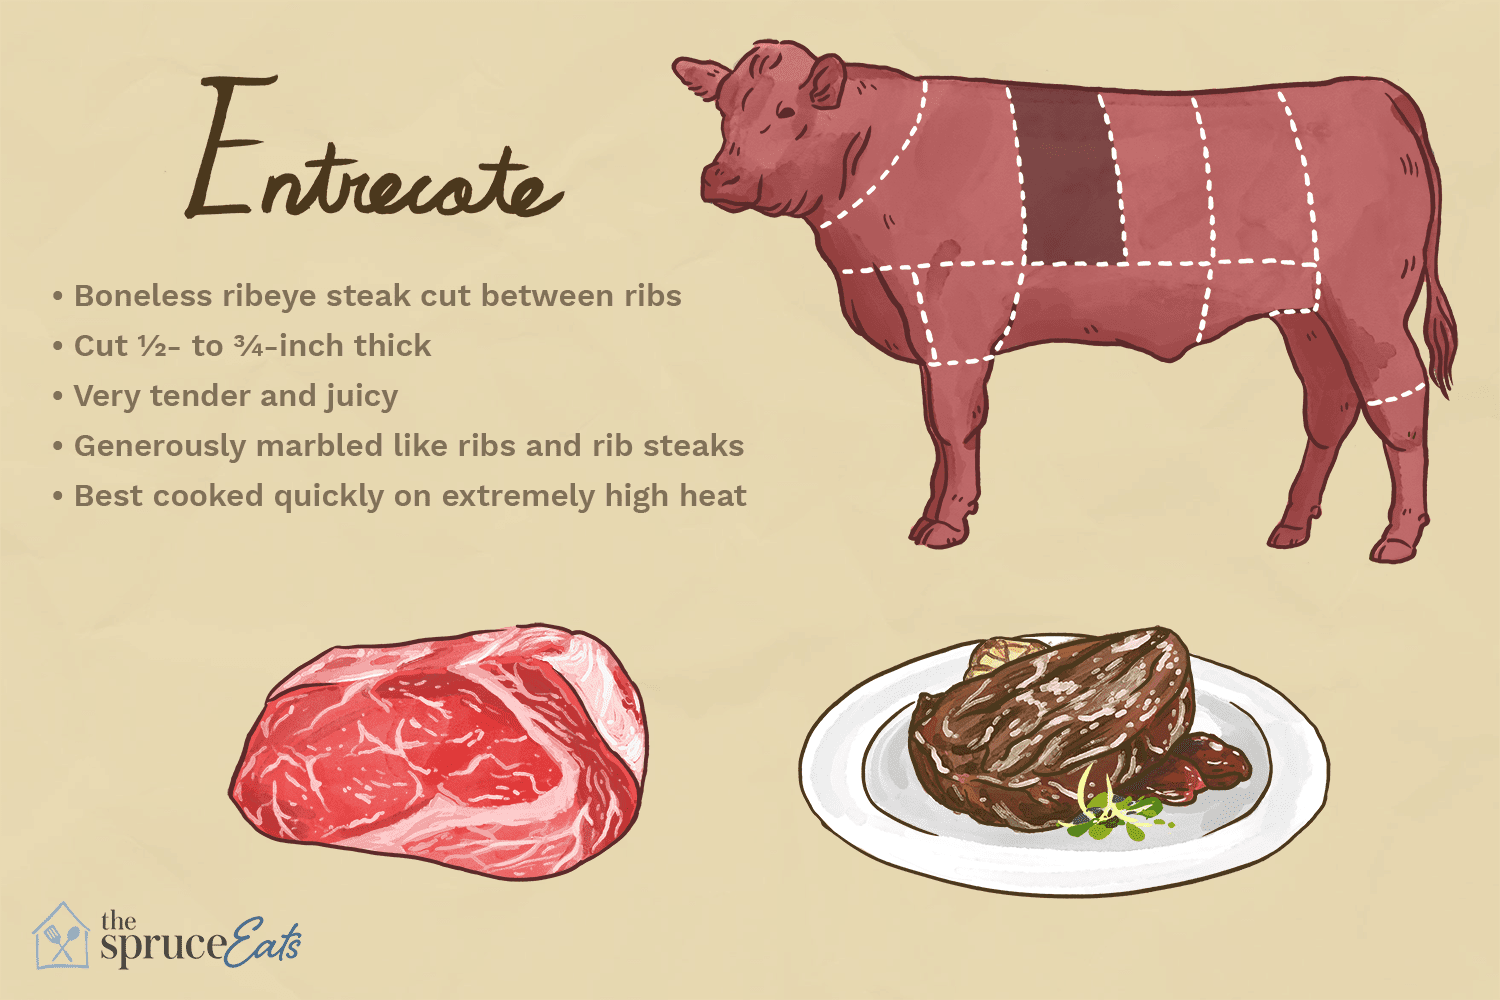 what is entrecote